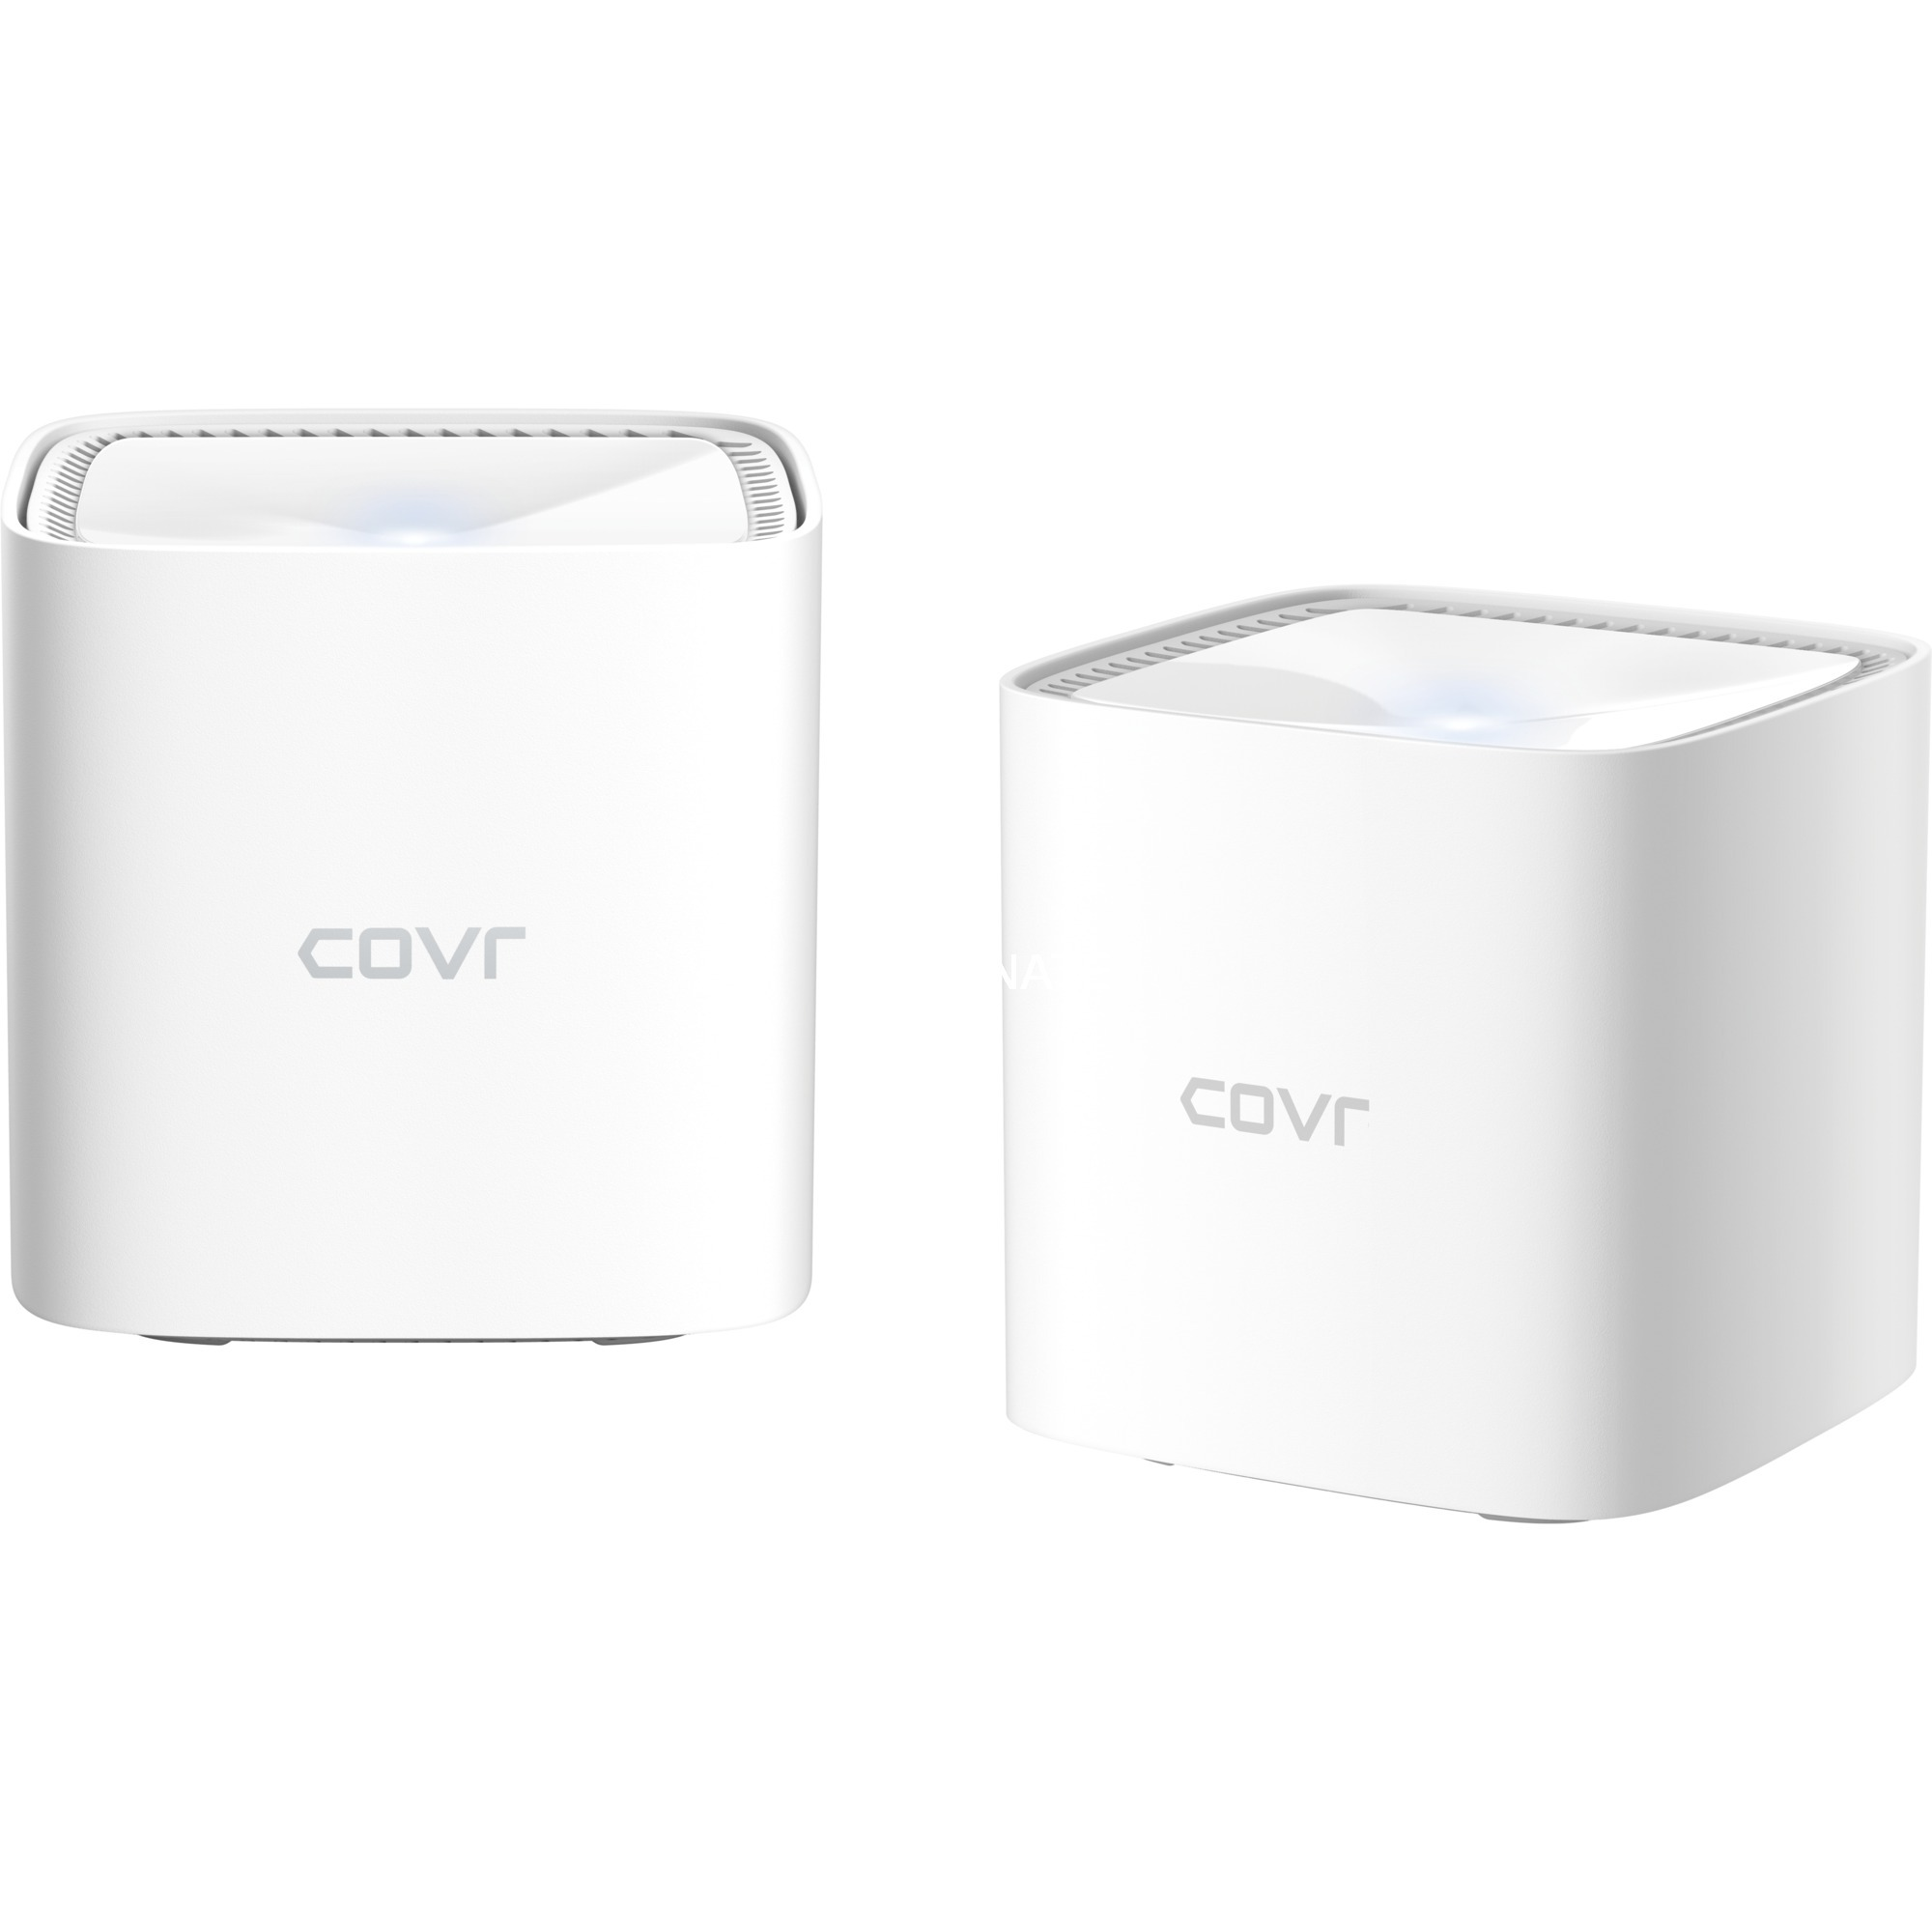 Image of COVR-1102 Dualband Whole Home Mesh Wi-Fi, Access Point